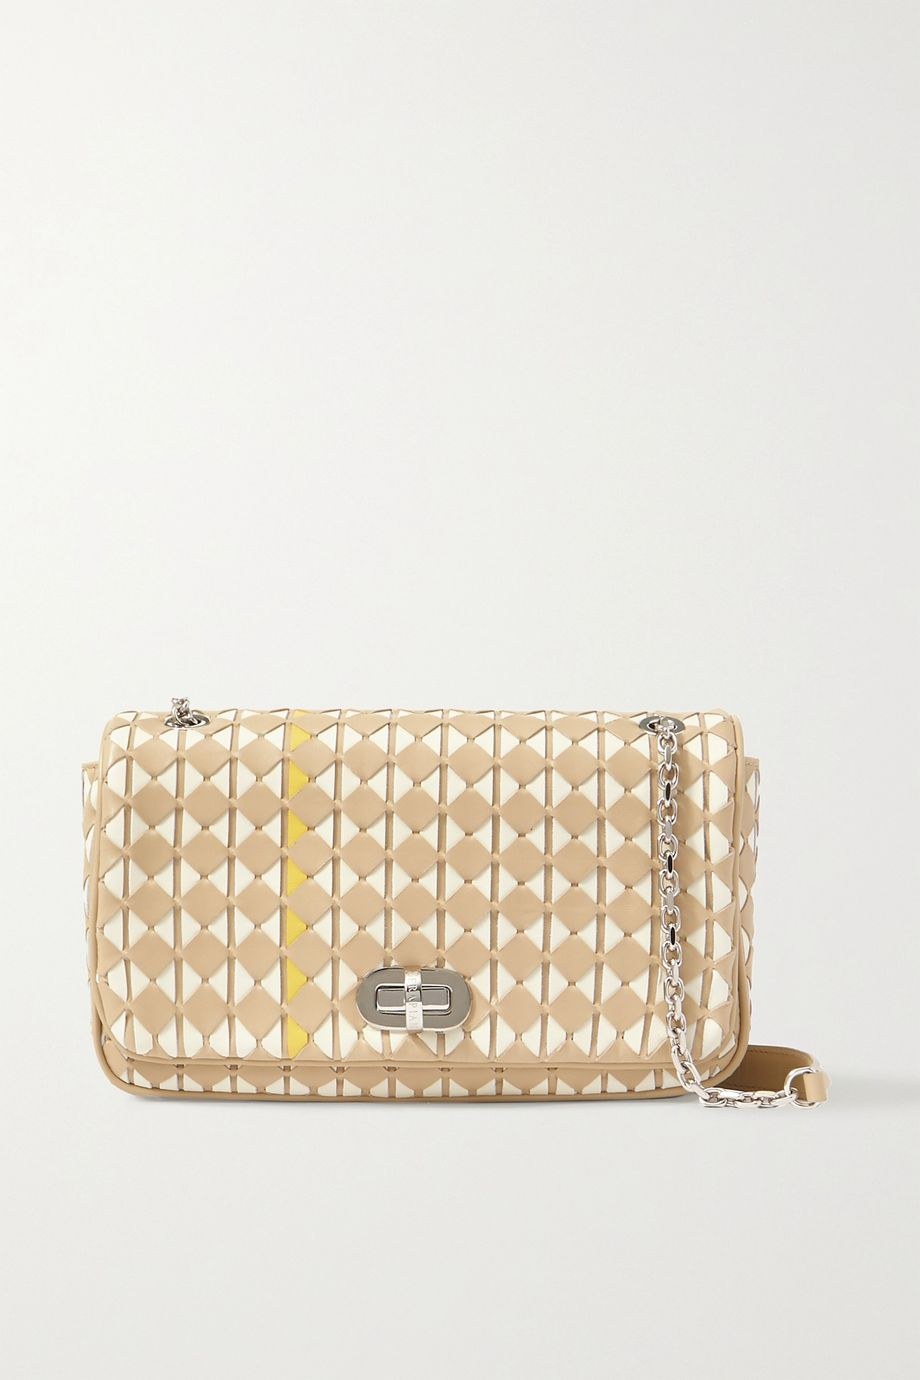 Serapian Woven leather shoulder bag